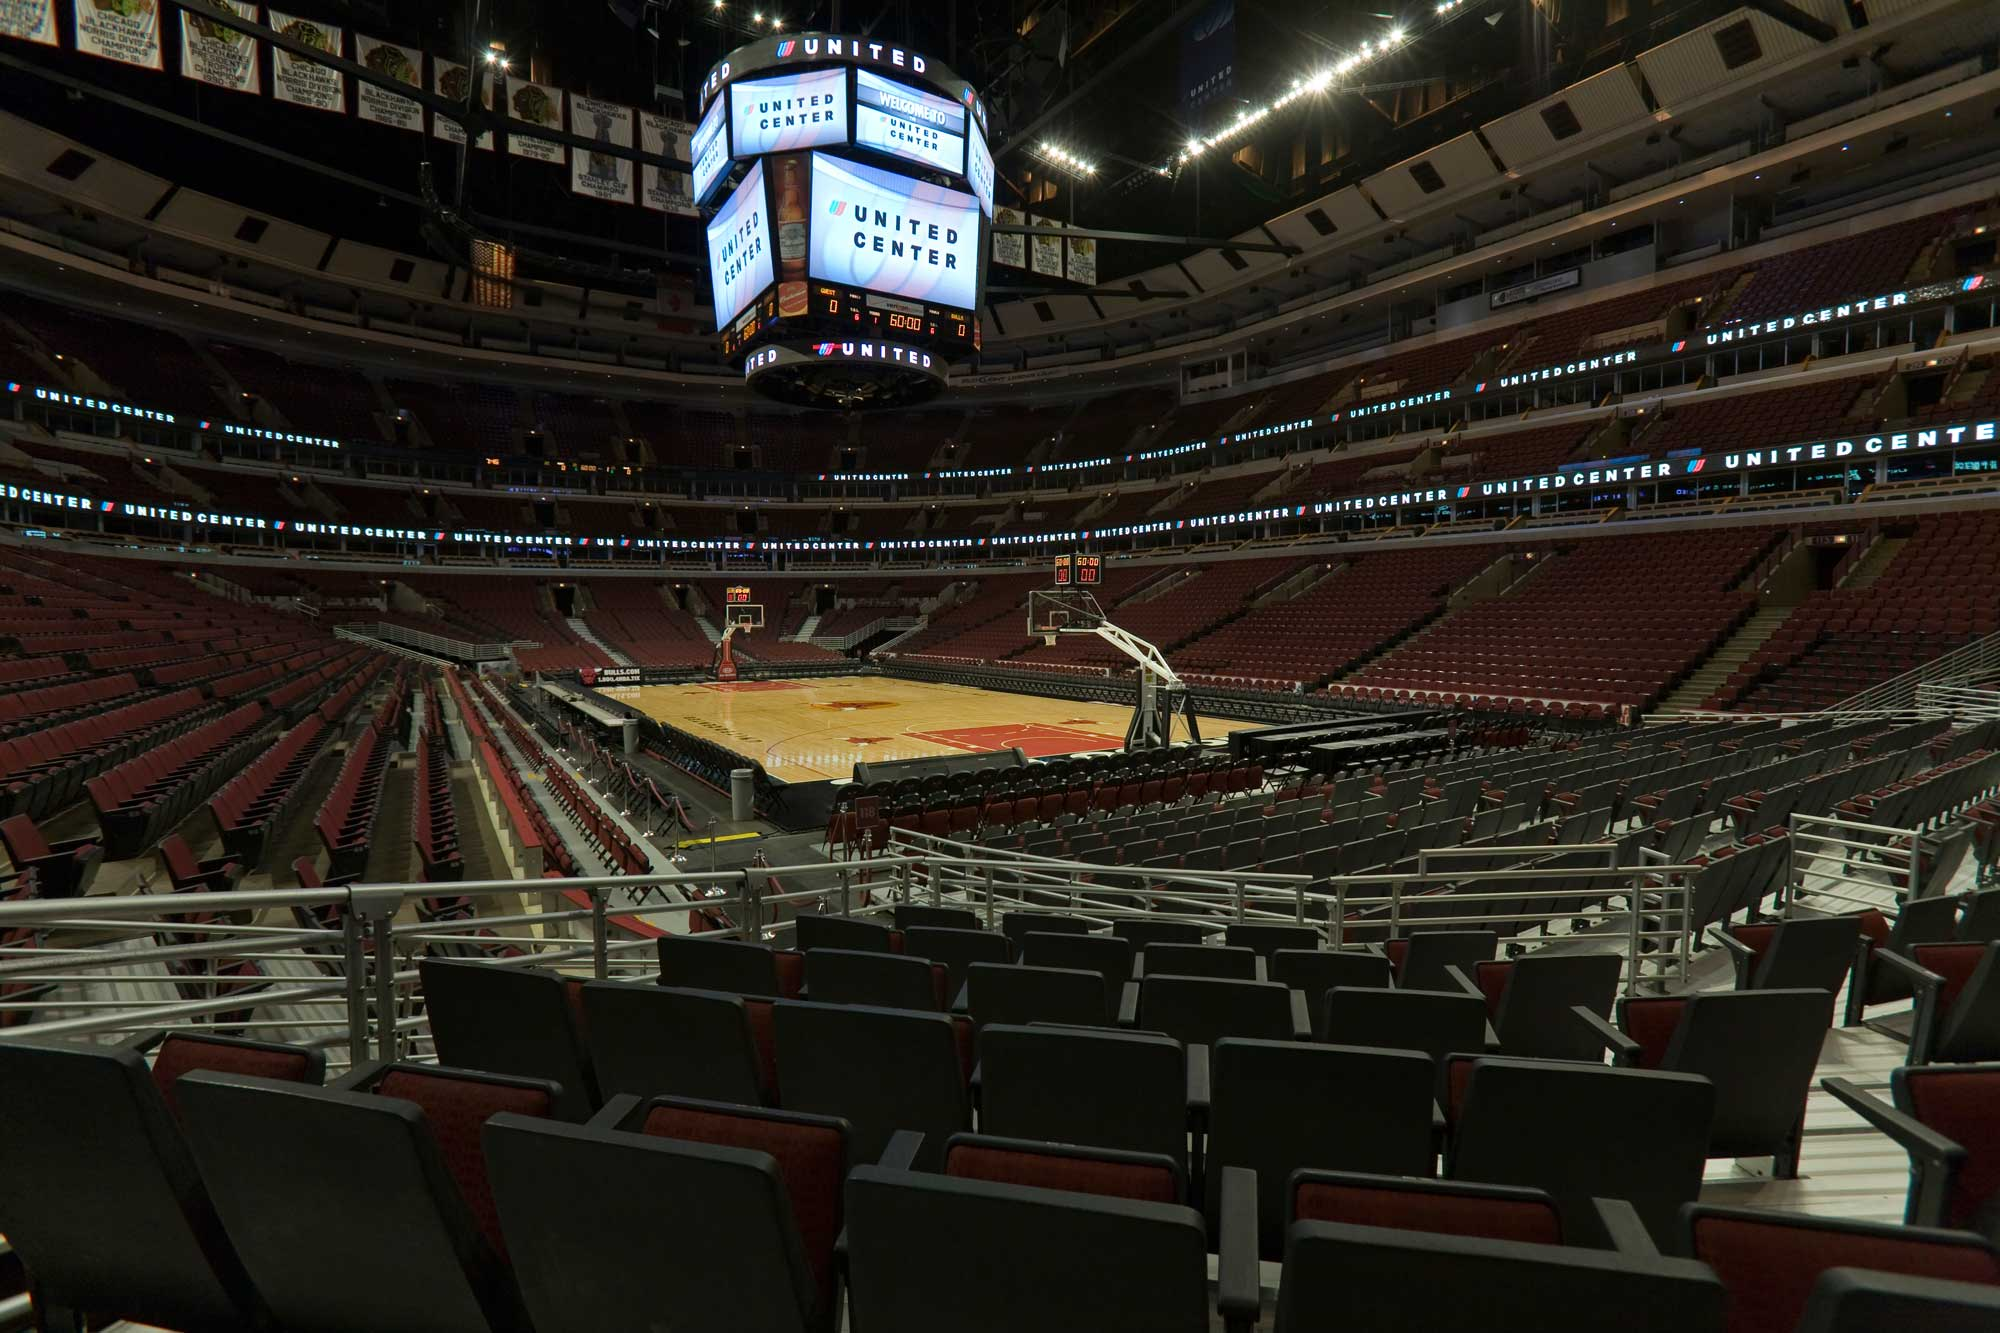 http://www.unitedcenter.com/flash/seating_chart/photos/basketball/section119.jpg